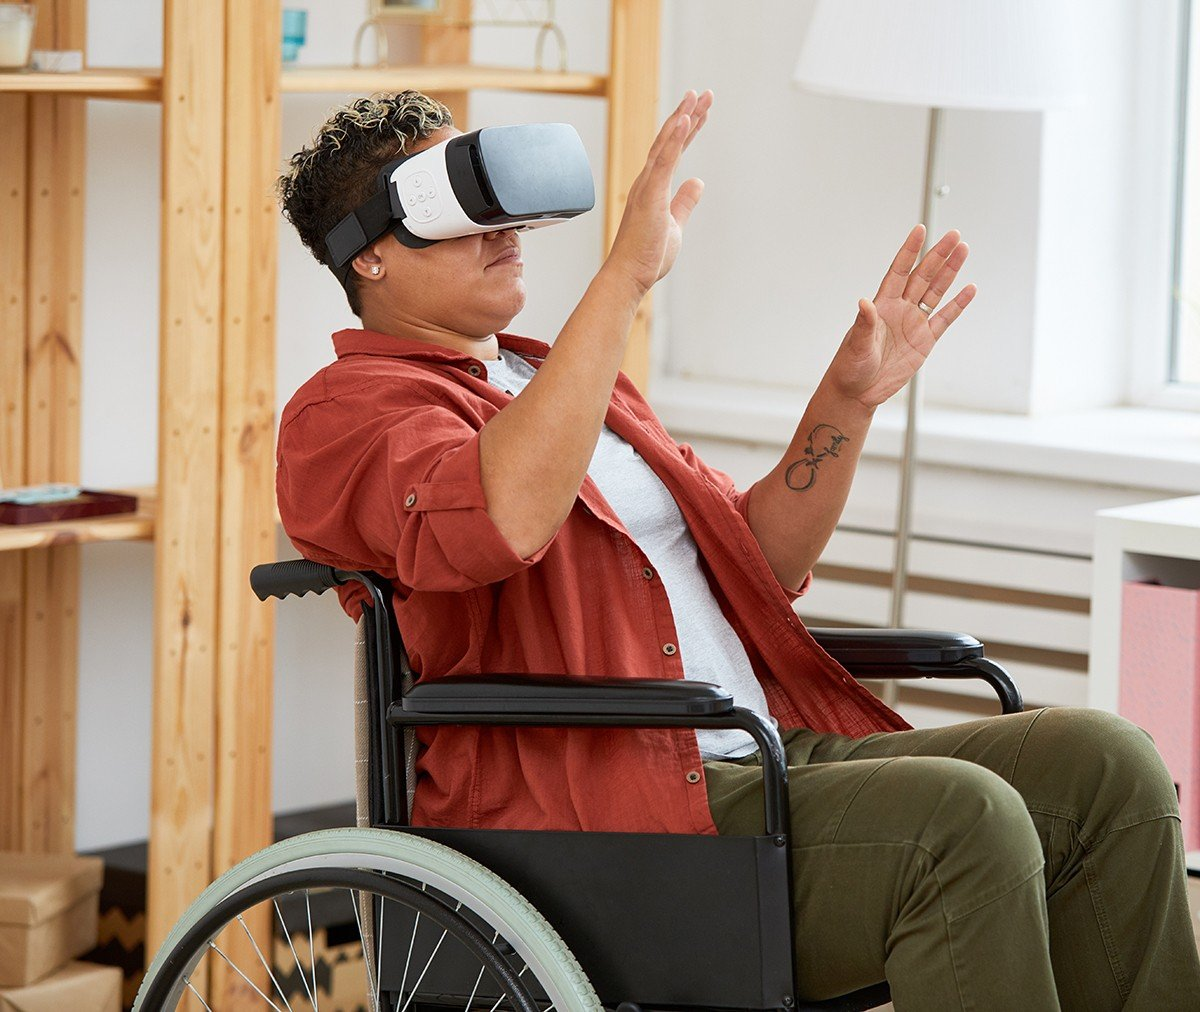 VR Less pain, more to gain